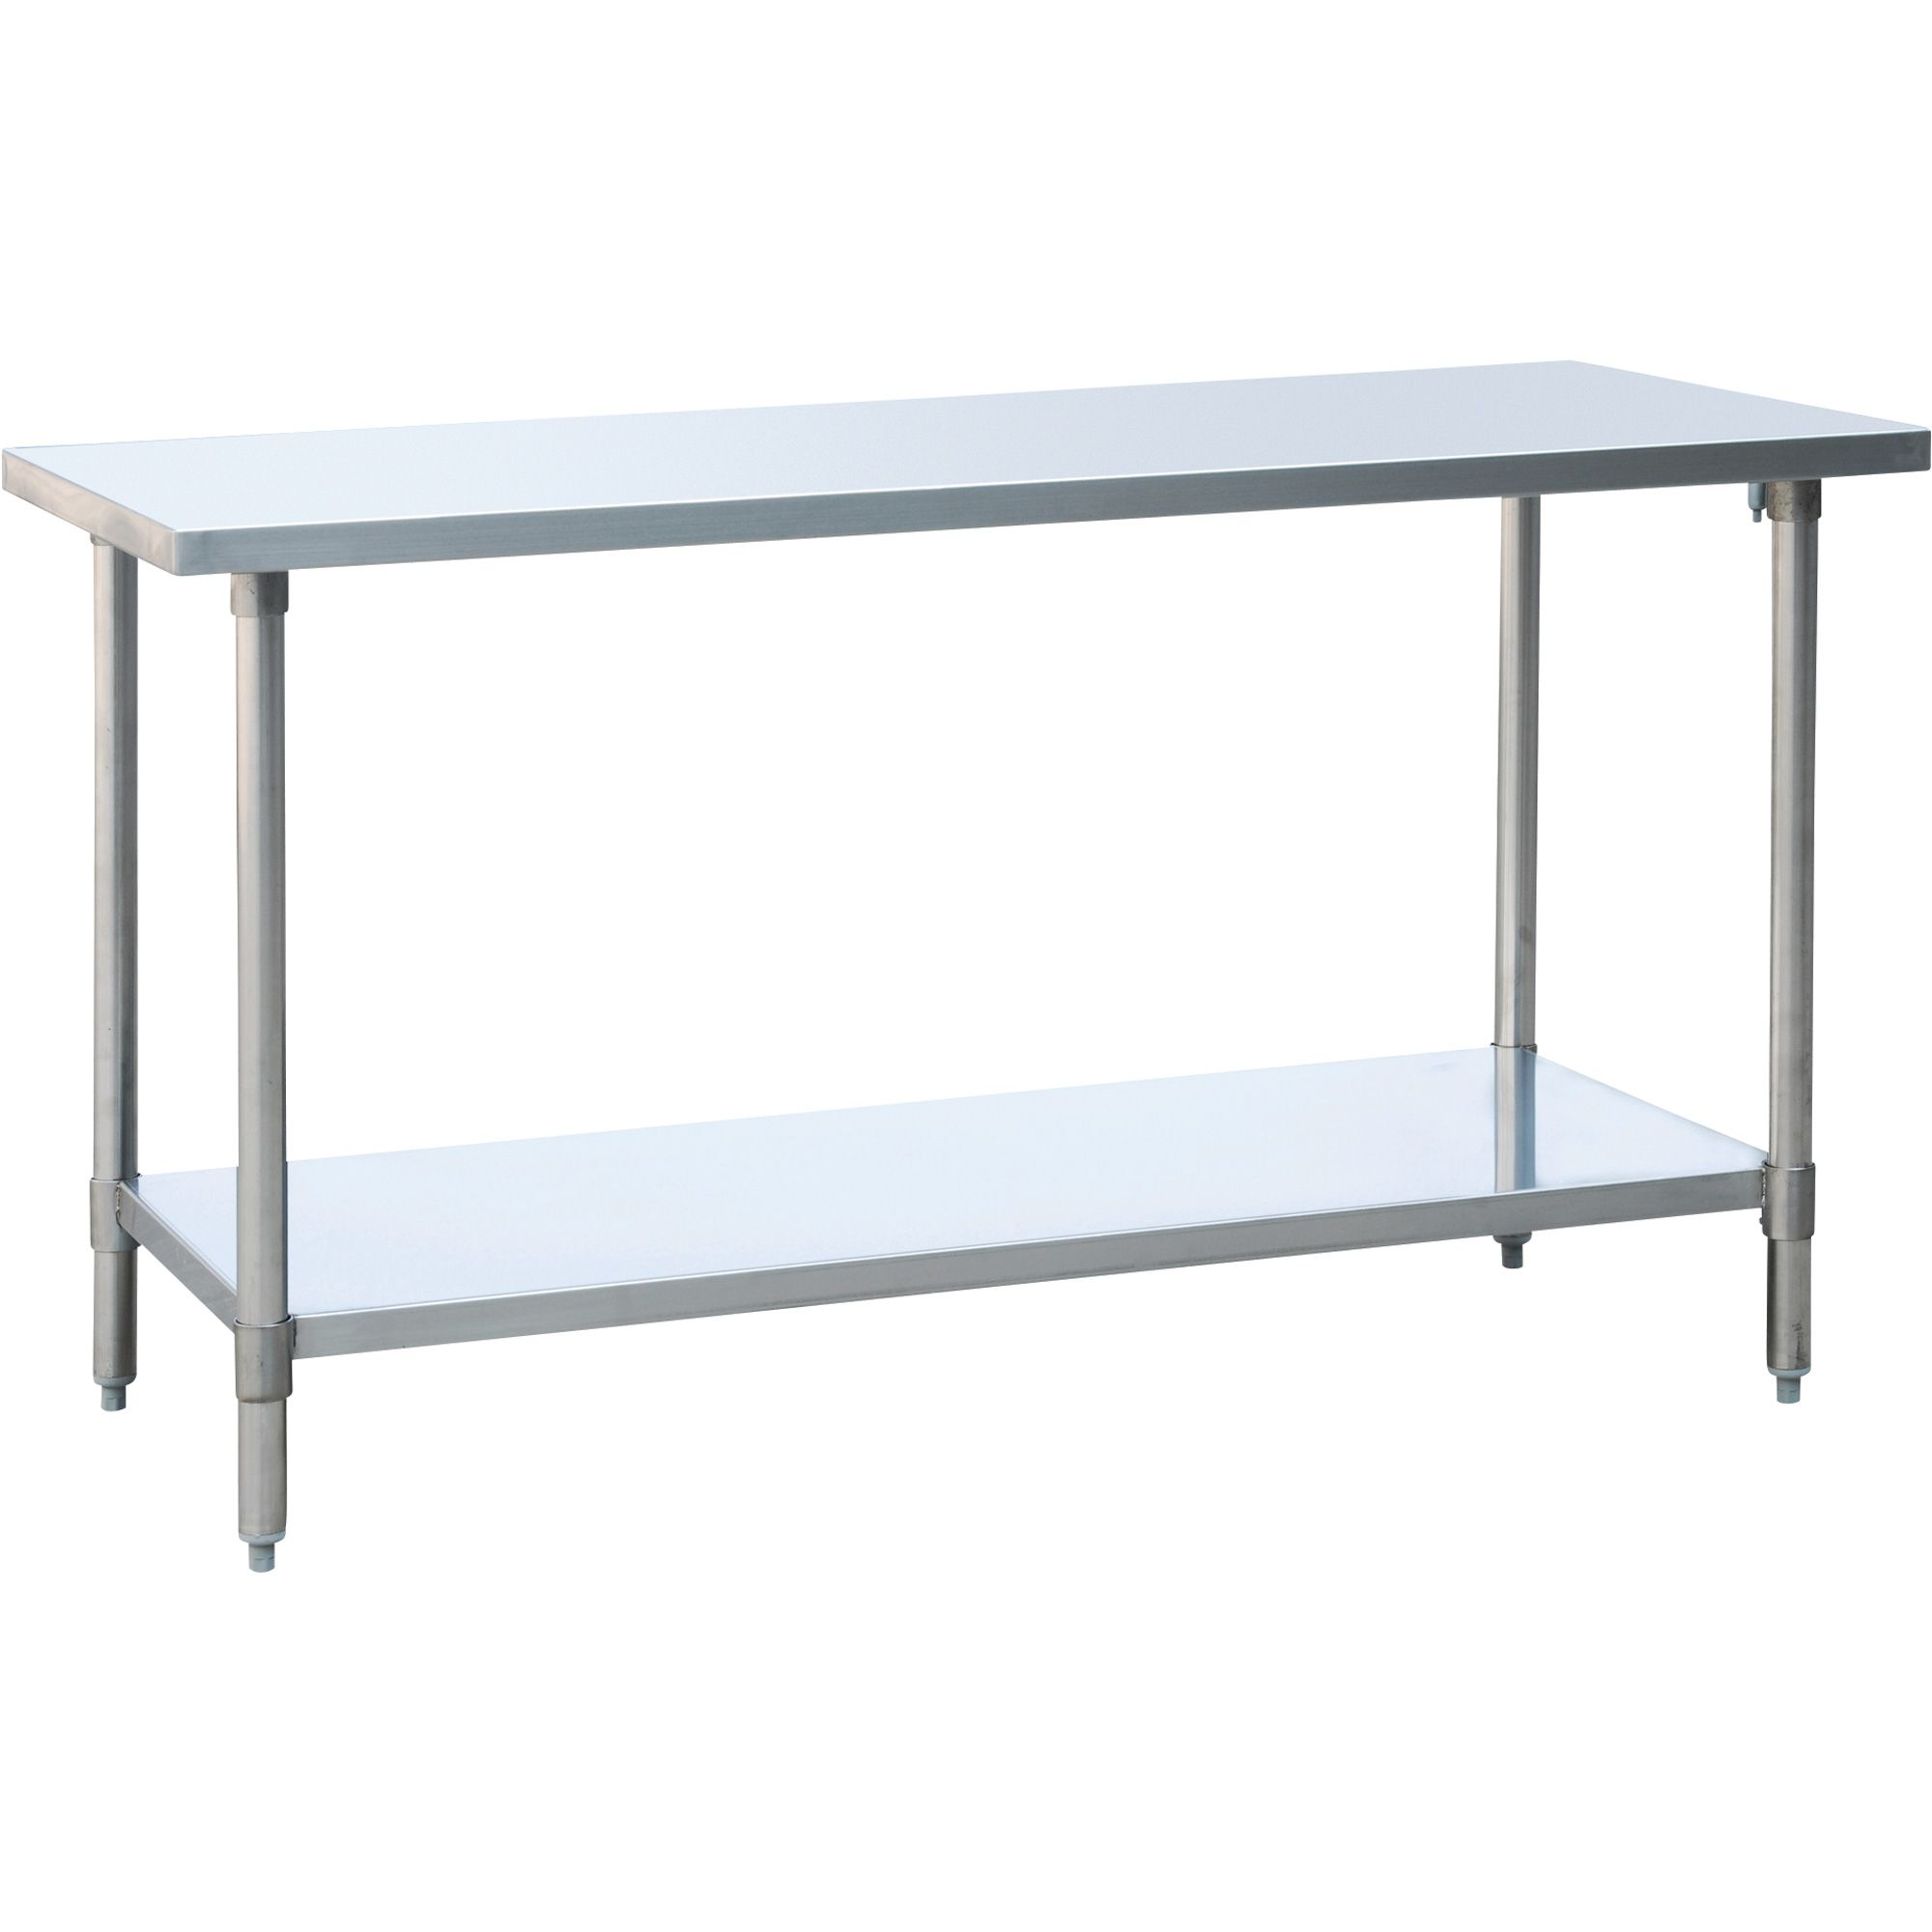 Roughneck Stainless Steel Work Table 72in W X 24in D X 35in H Stainless Steel Work Table Work Table Steel Workbench